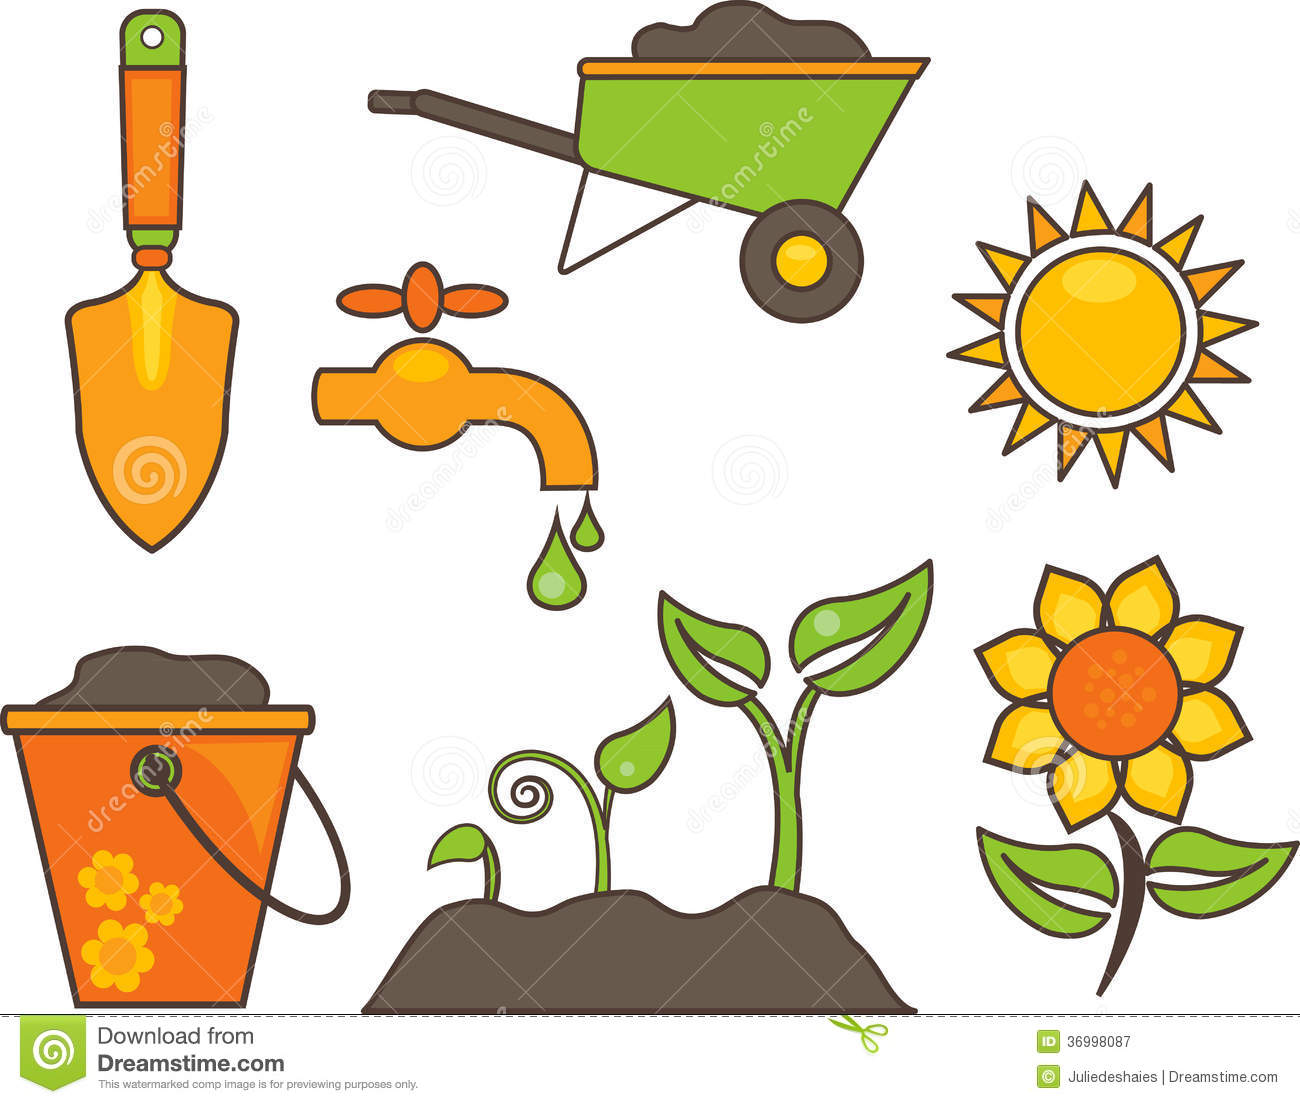 Gardening Equipment Illustration Stock Vector